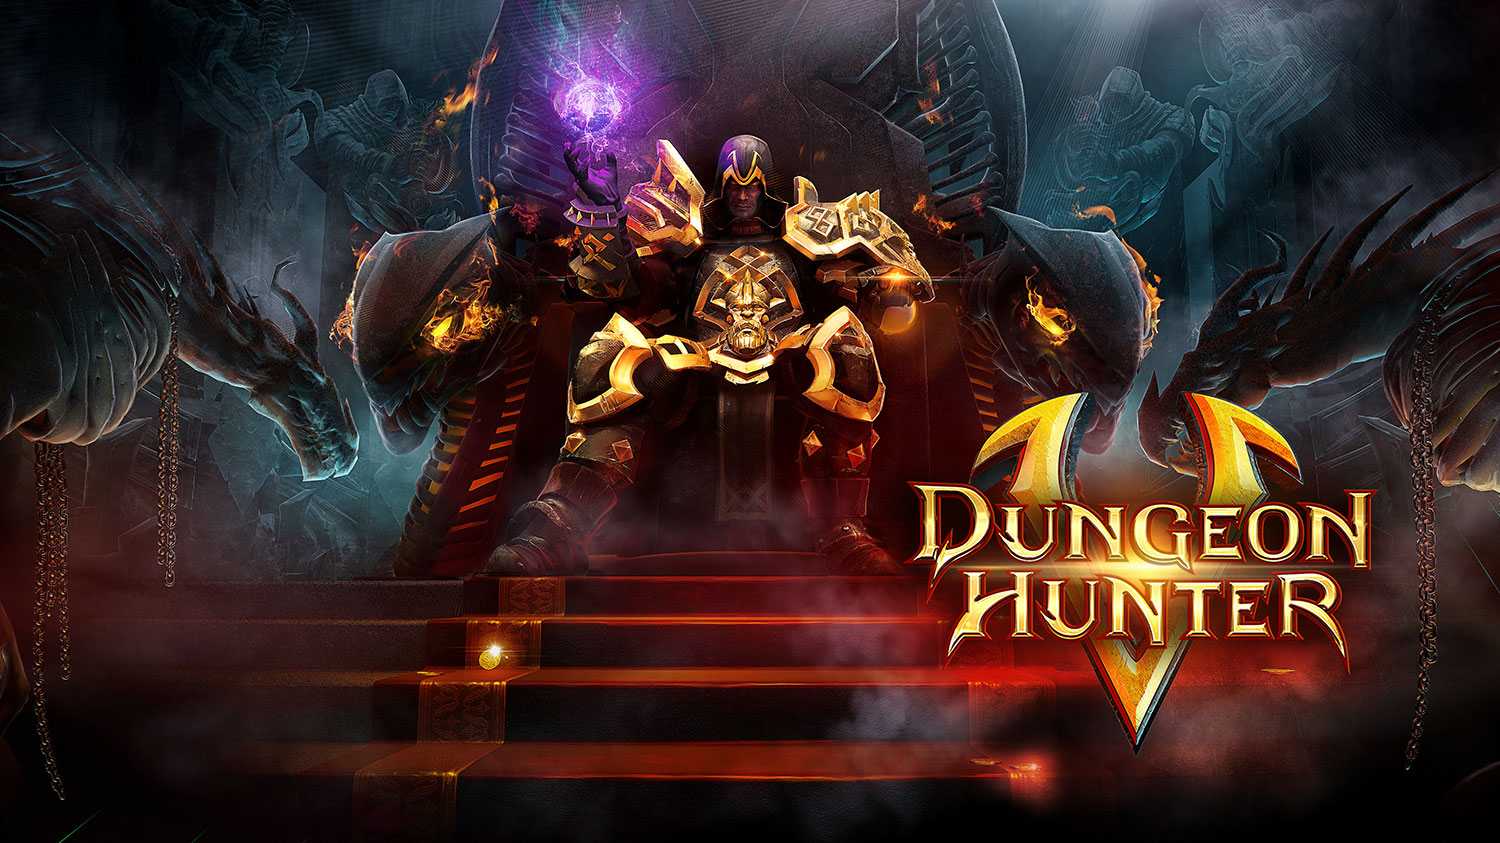 Dungeon-Hunter-5-Android-Game-Full.jpg